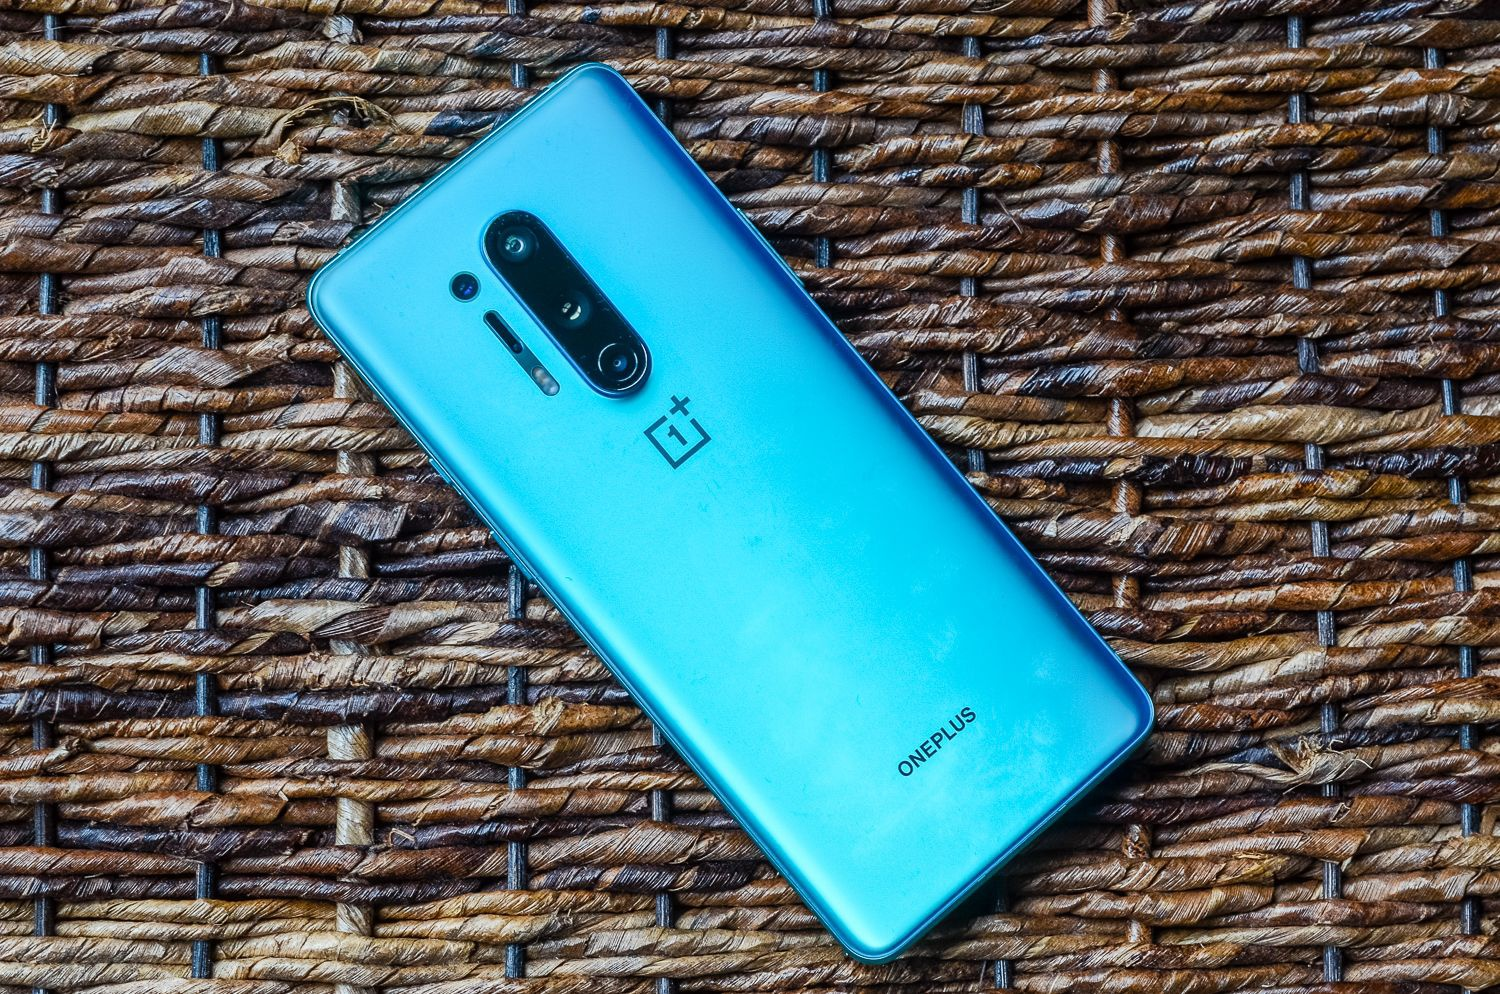 oneplus 8 as a powerful phone